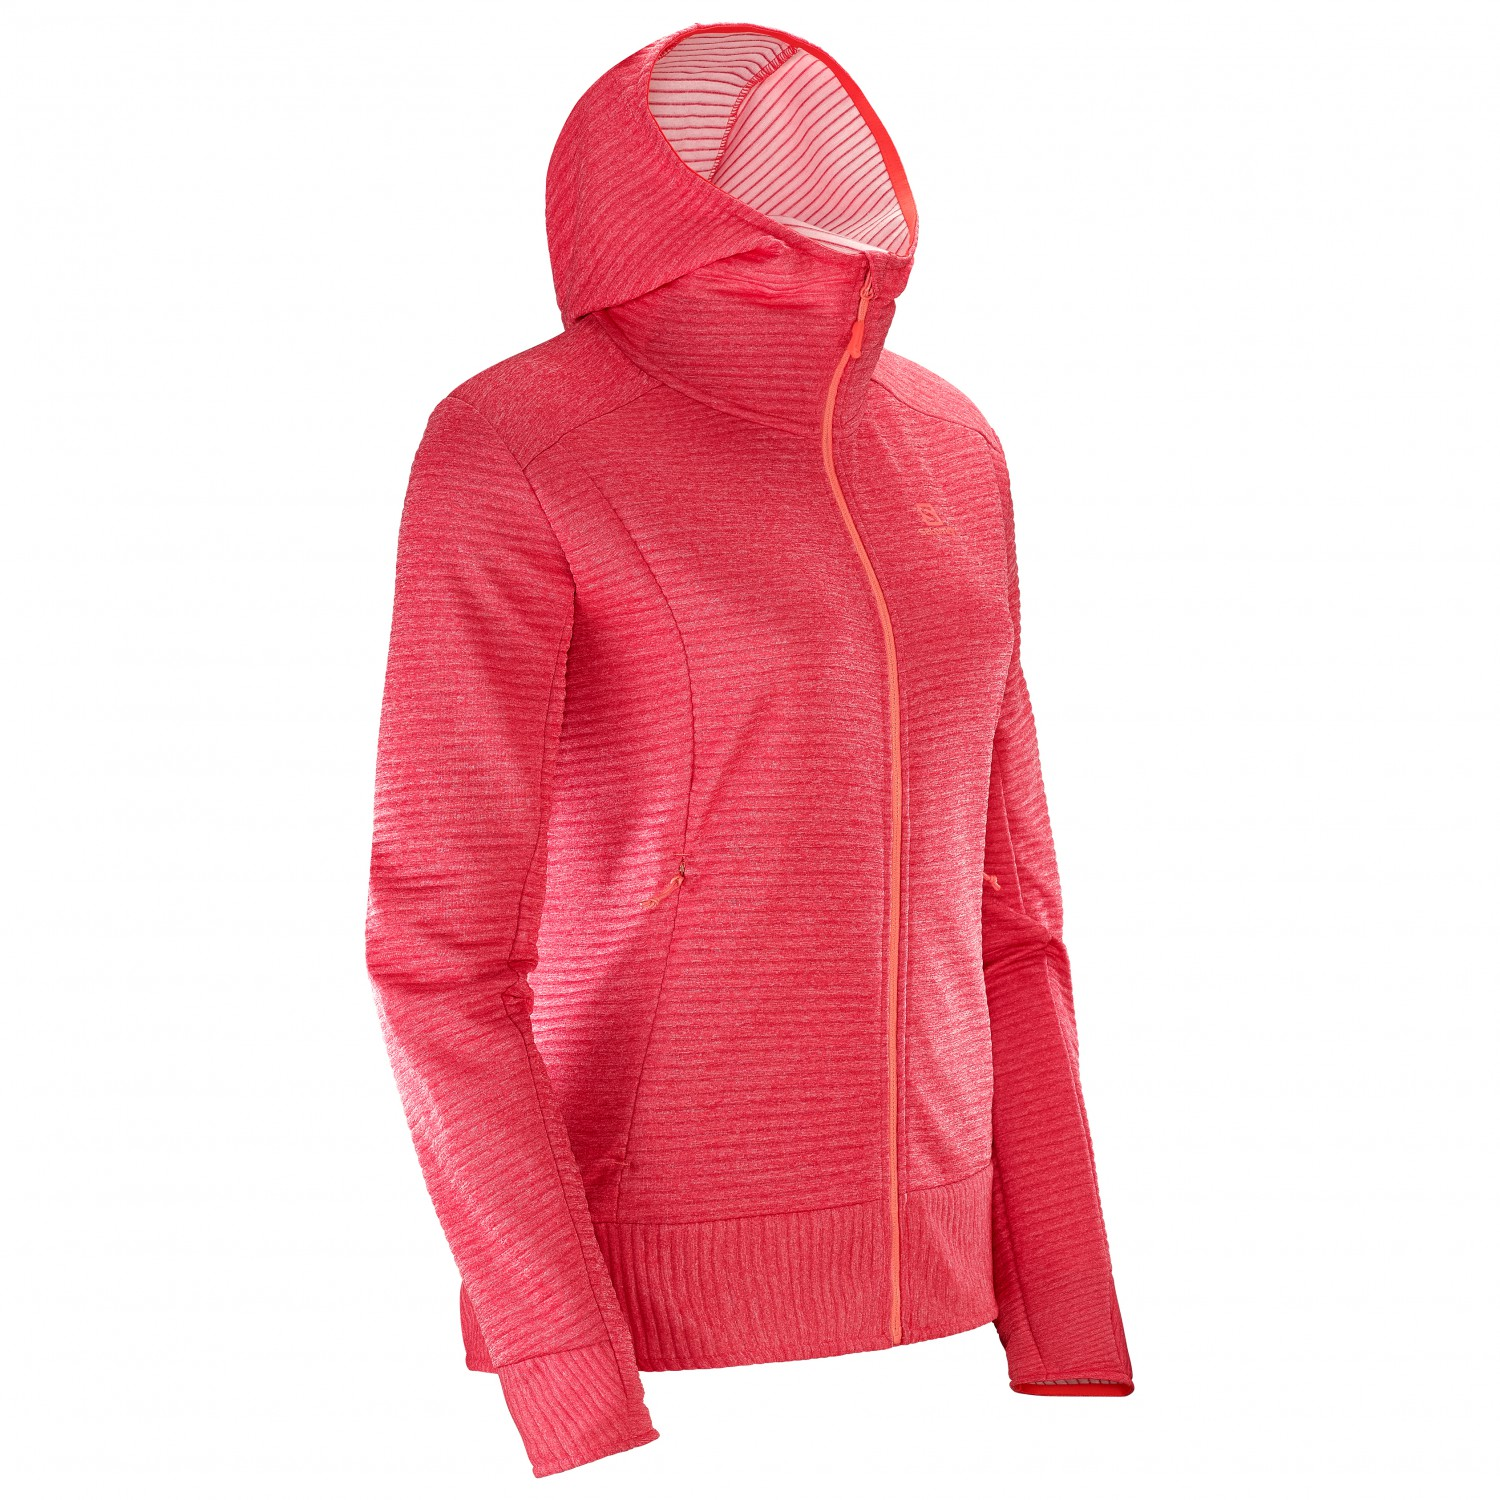 Mid Hoodie Veste SkyXs Women's Polaire Salomon Right Nice Night zMVqpLGSU